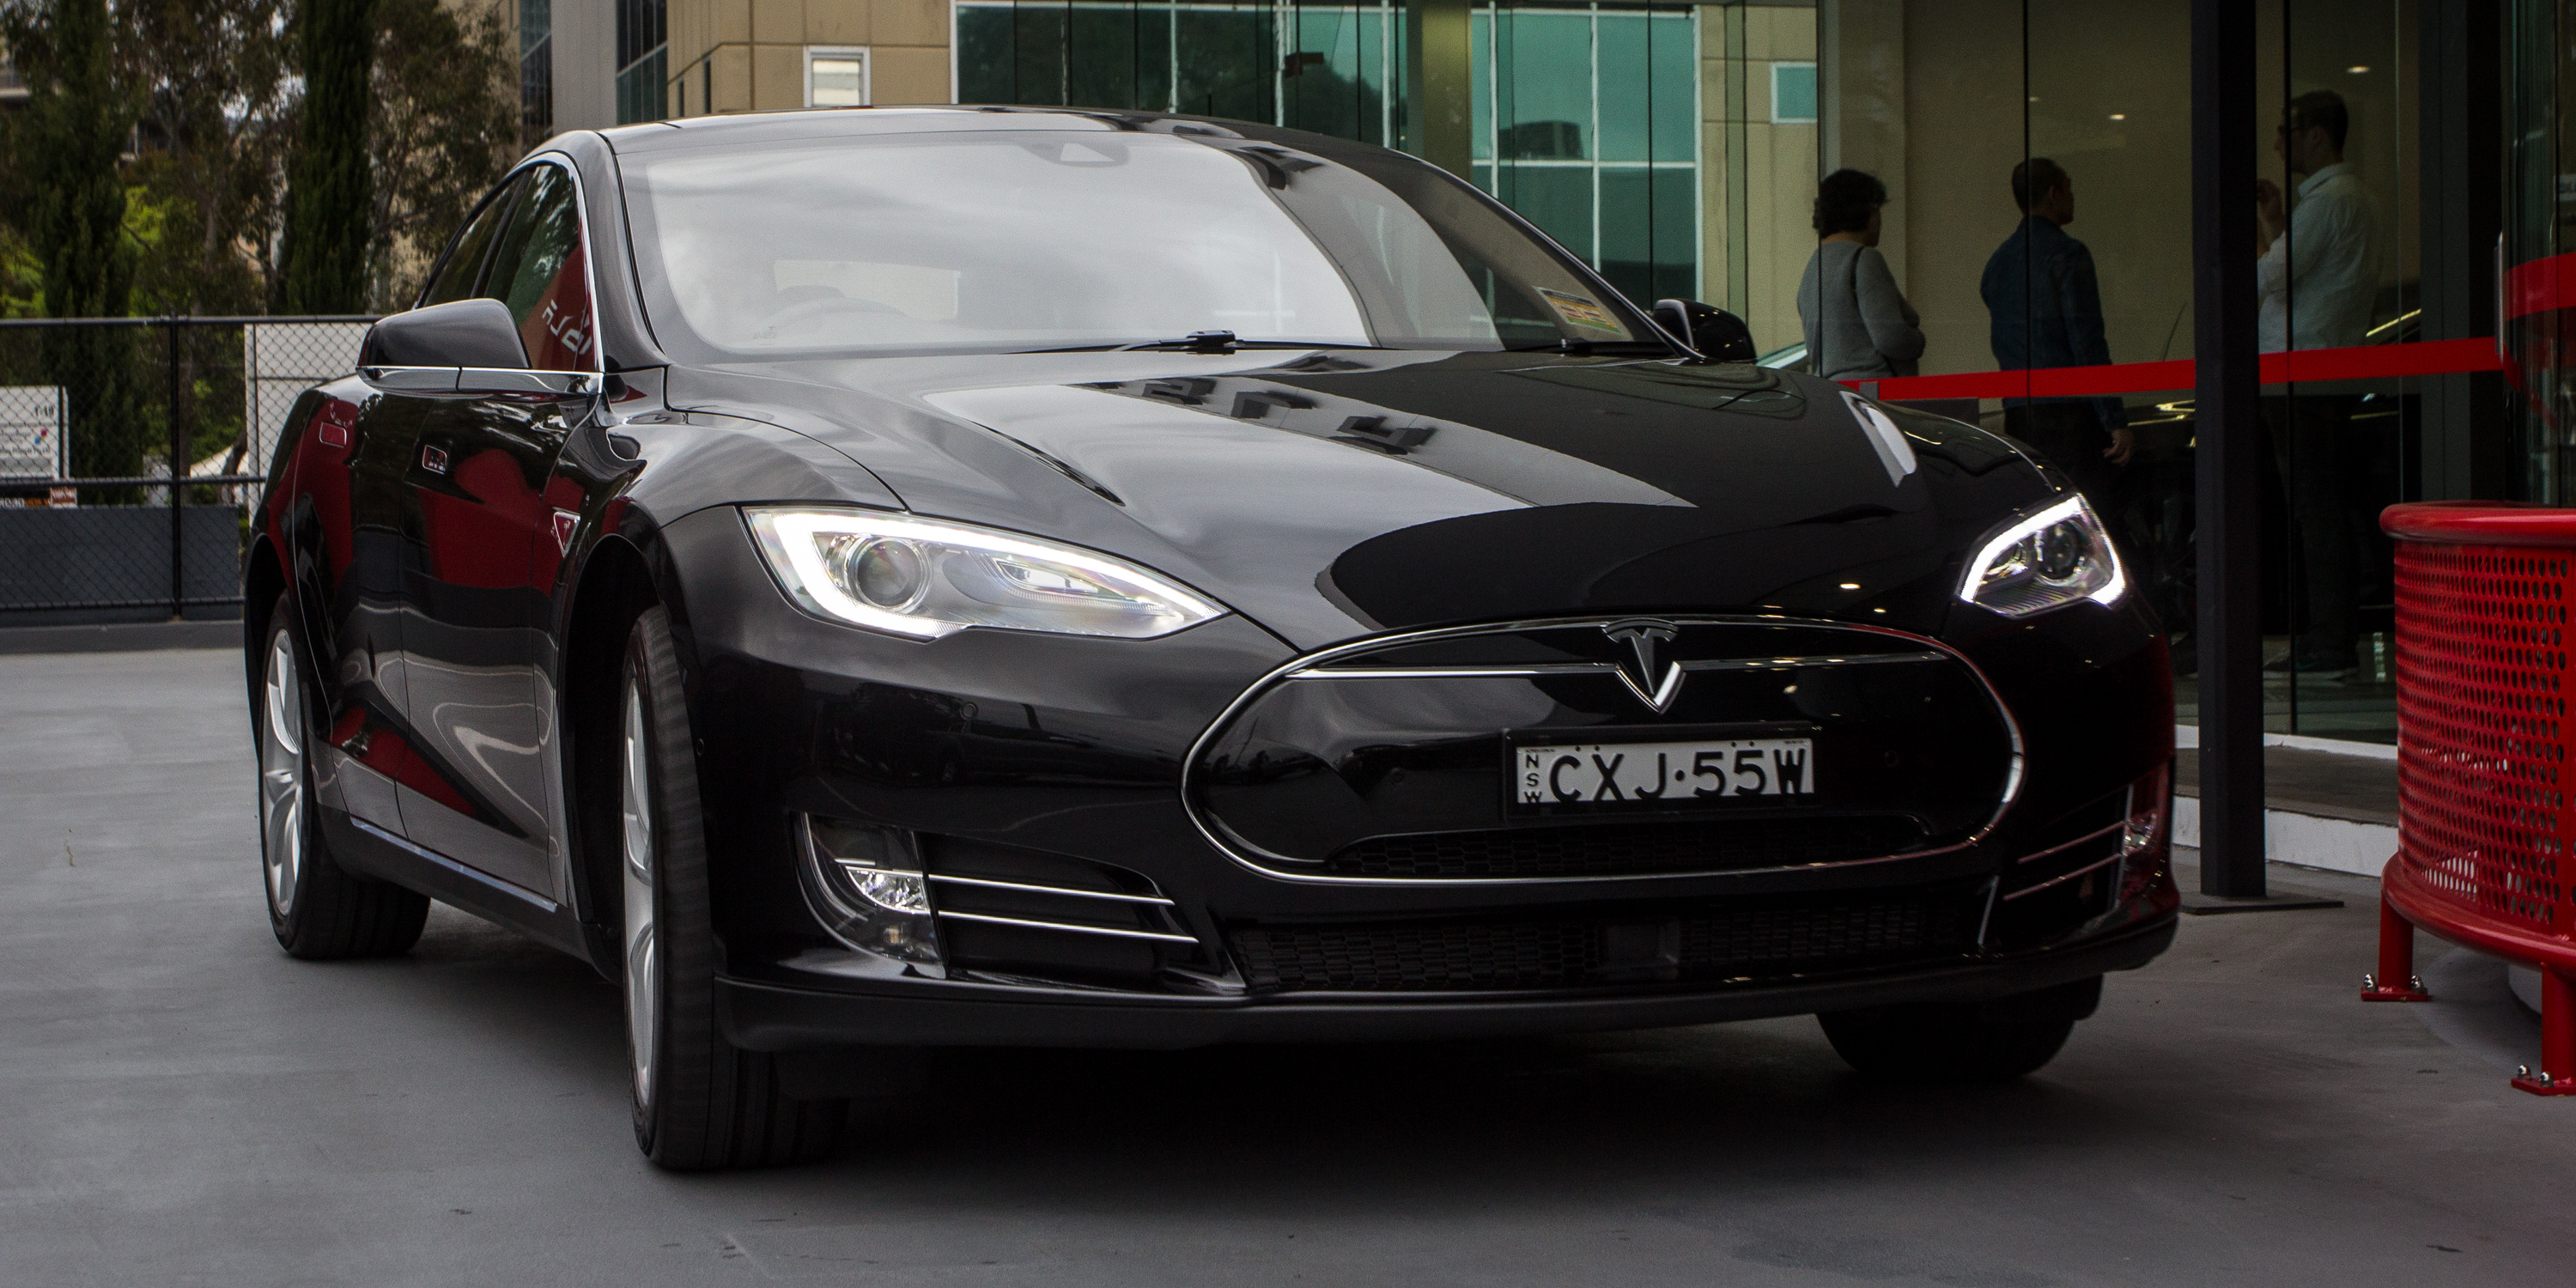 Original Tesla Model S Sydney To Melbourne Road Trip  Photos 1 Of 54